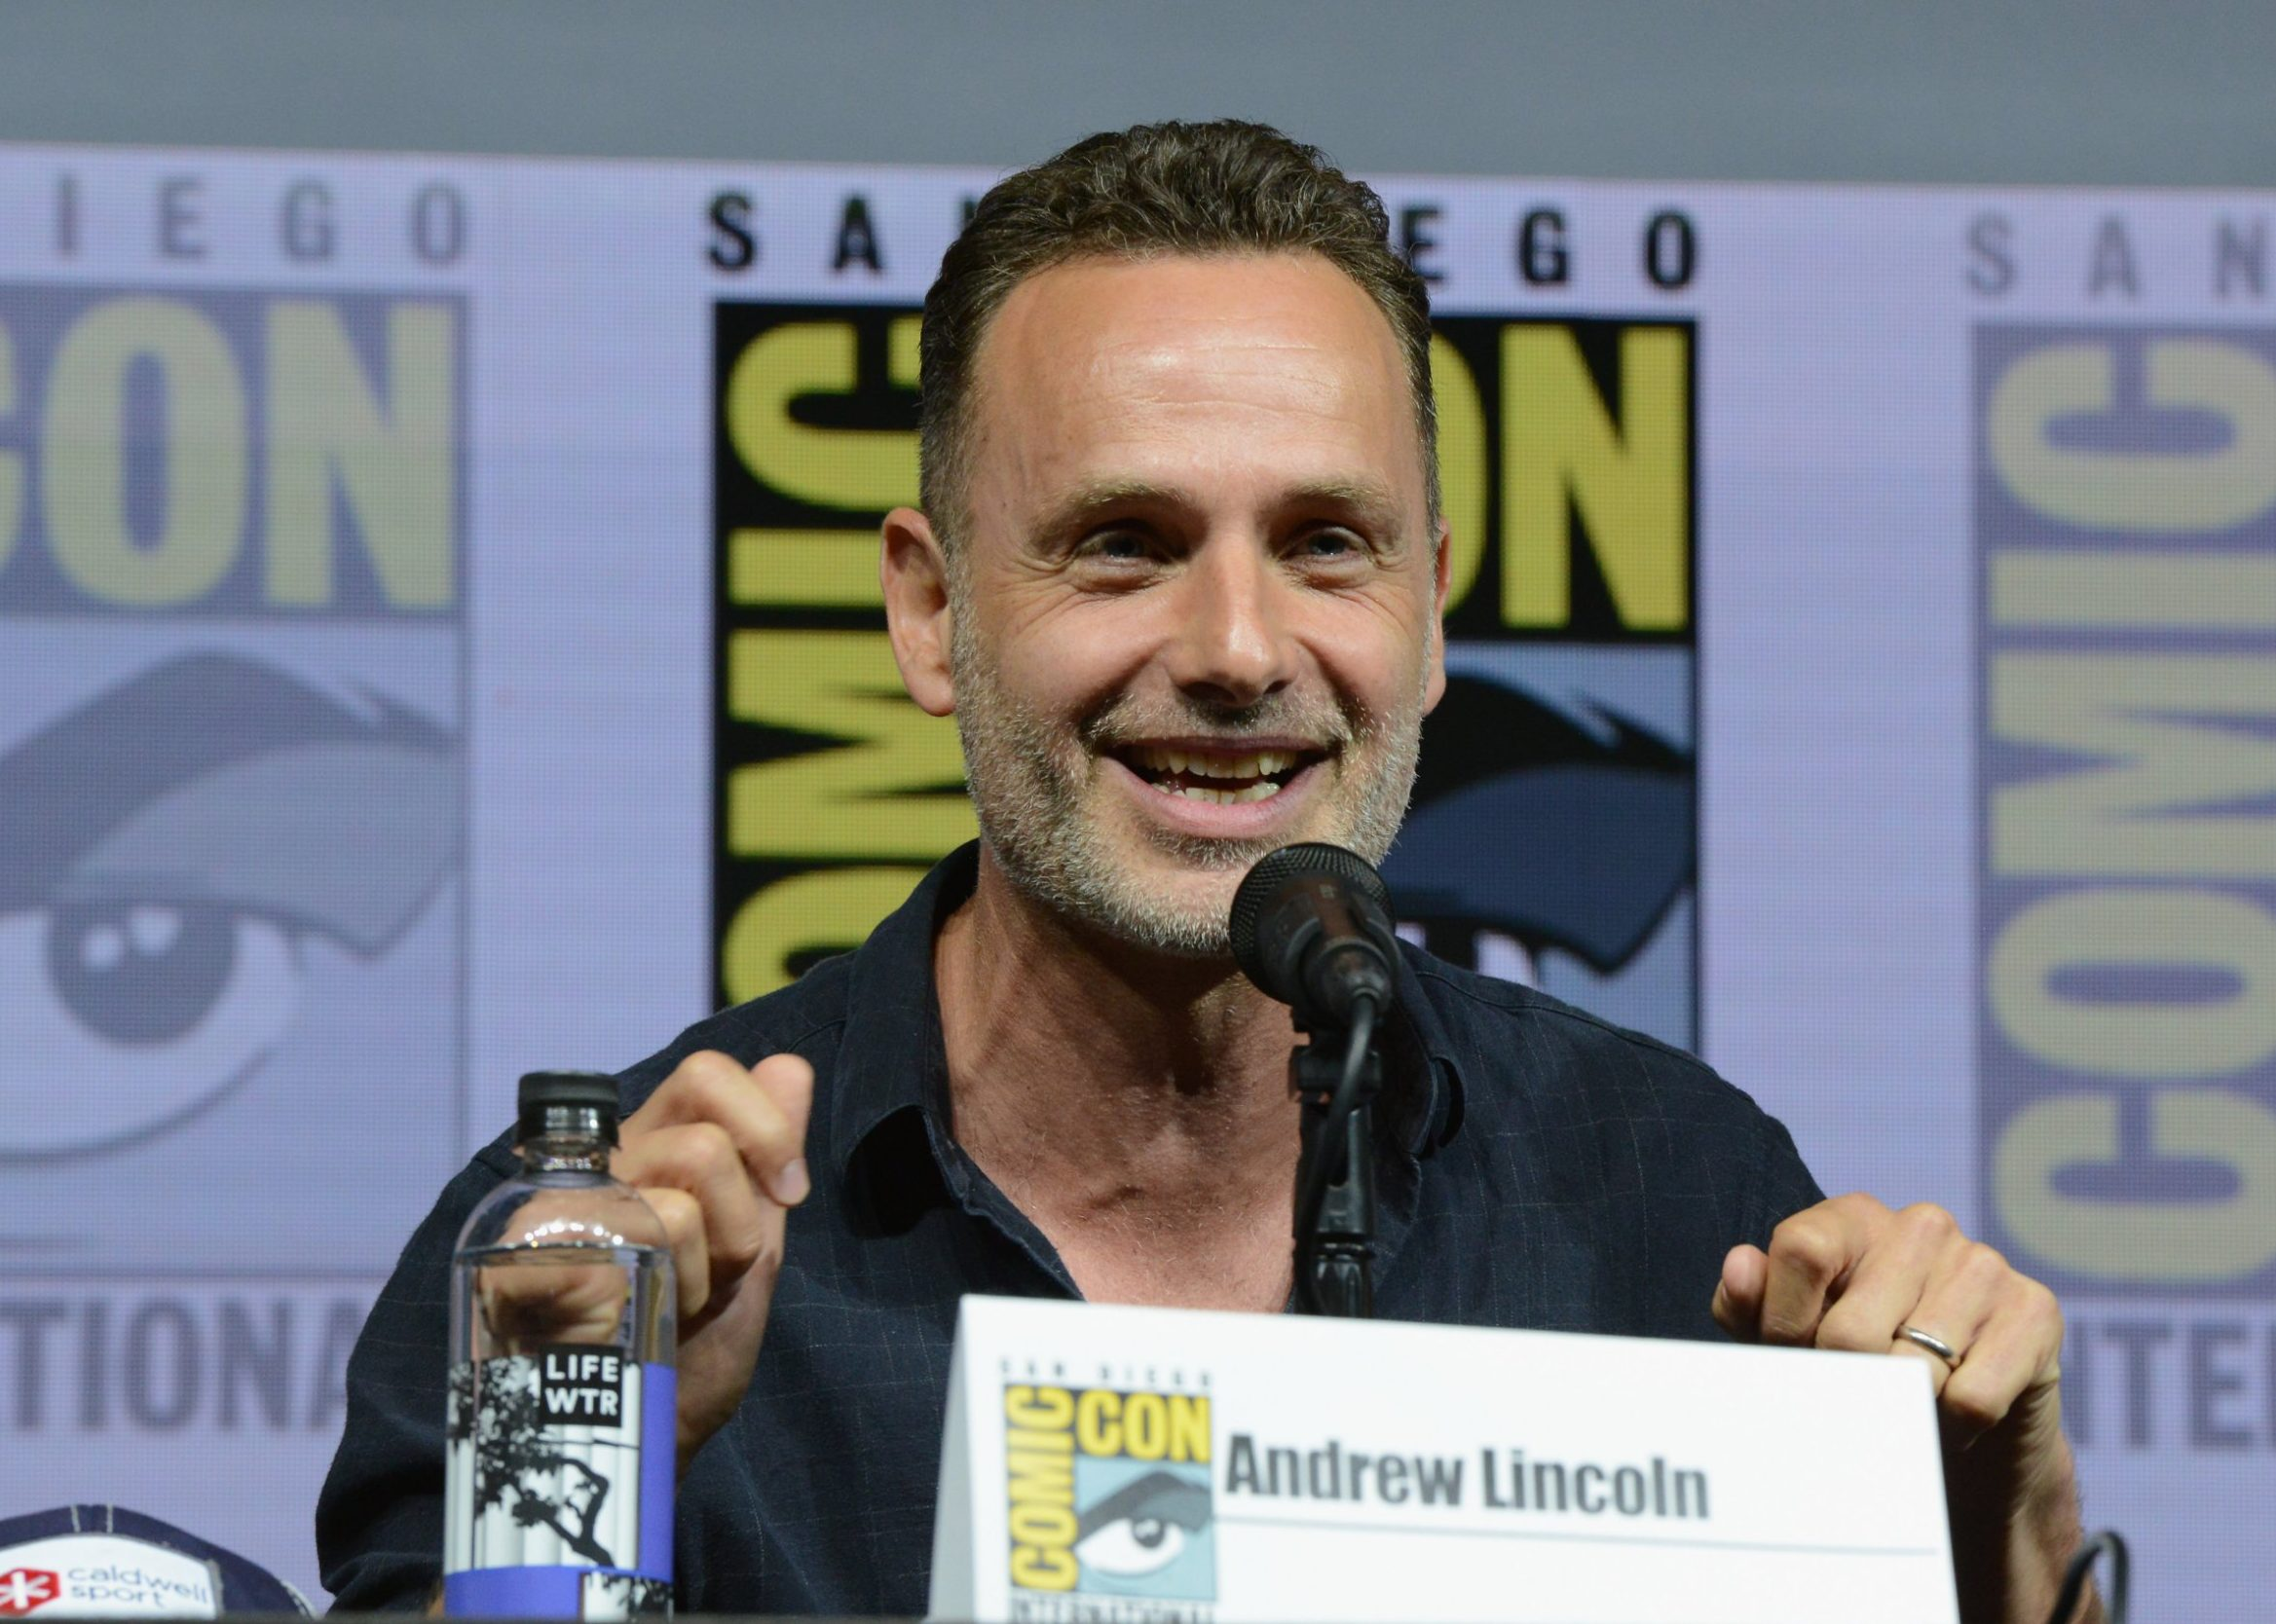 """SAN DIEGO, CA - JULY 20: Andrew Lincoln speaks onstage at AMC's """"The Walking Dead"""" panel during Comic-Con International 2018 at San Diego Convention Center on July 20, 2018 in San Diego, California. (Photo by Albert L. Ortega/Getty Images)"""